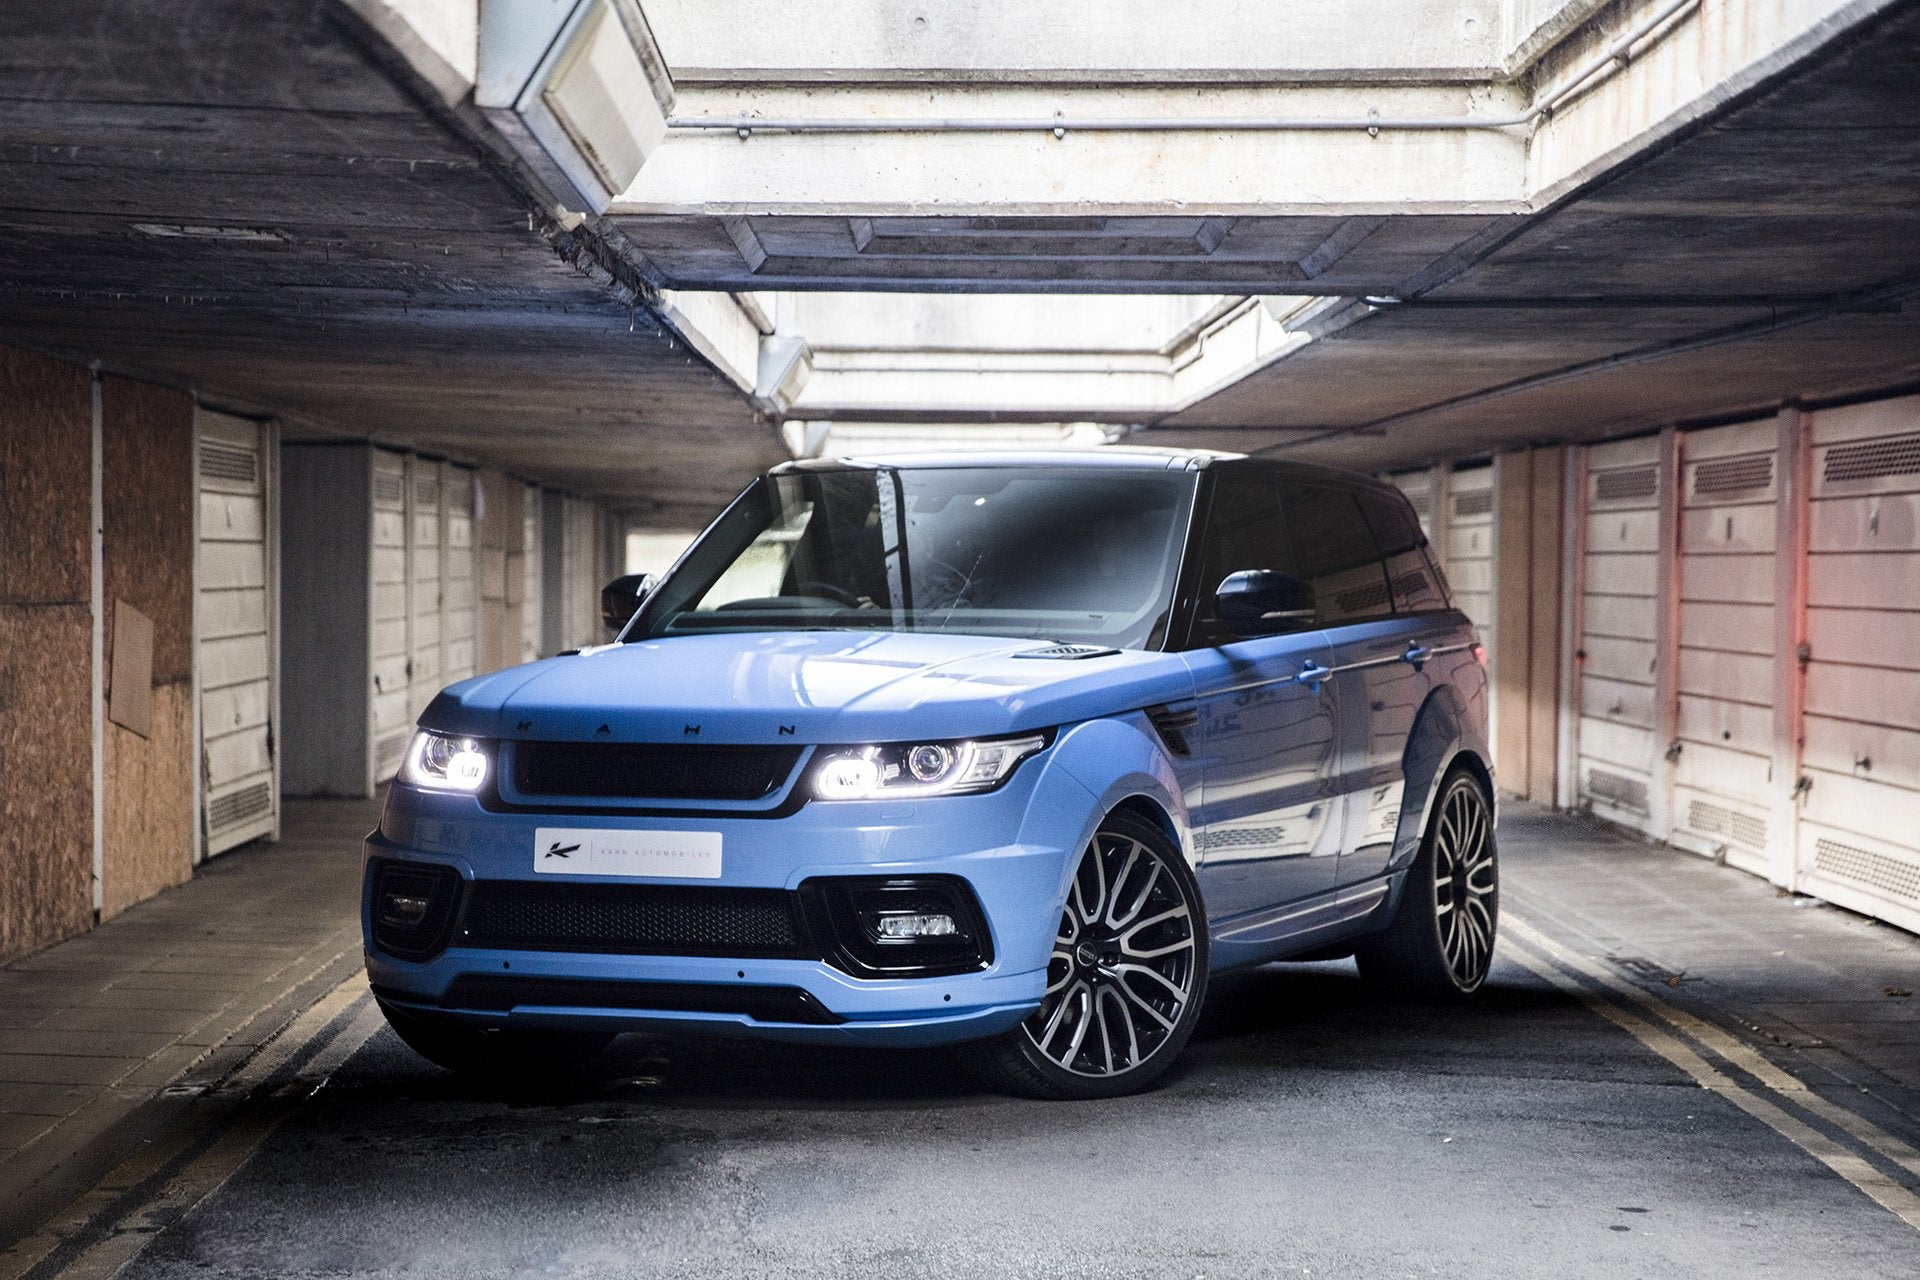 Range Rover Sport (2013-2018) Pace Car Exterior Body Styling Pack by Kahn - Image 2246